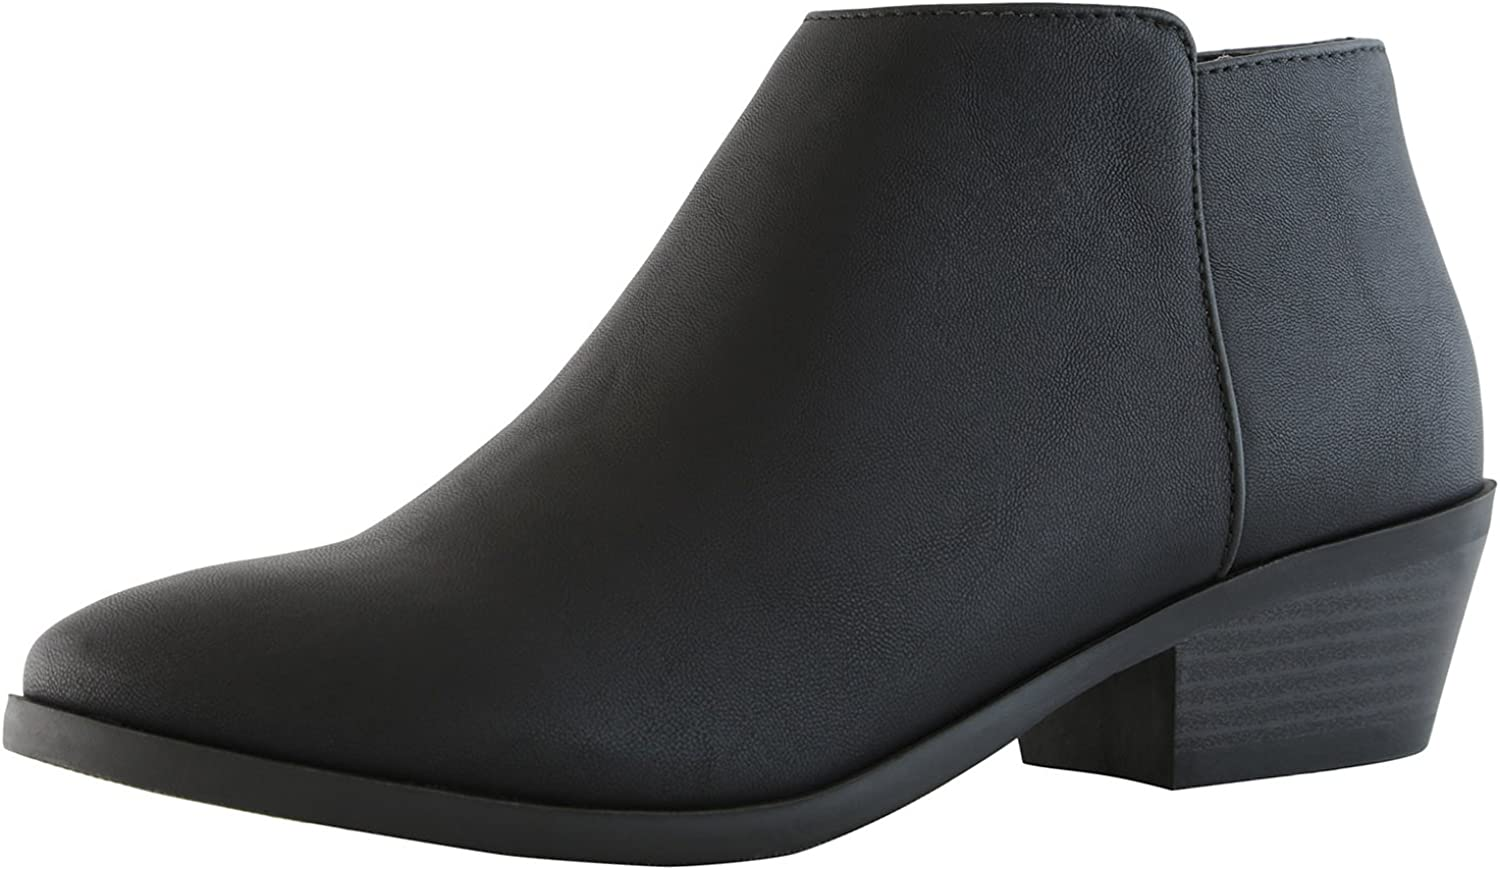 DailyShoes Women's Western Cowboy Bootie High material Ultra online shopping Comfortable - Cha